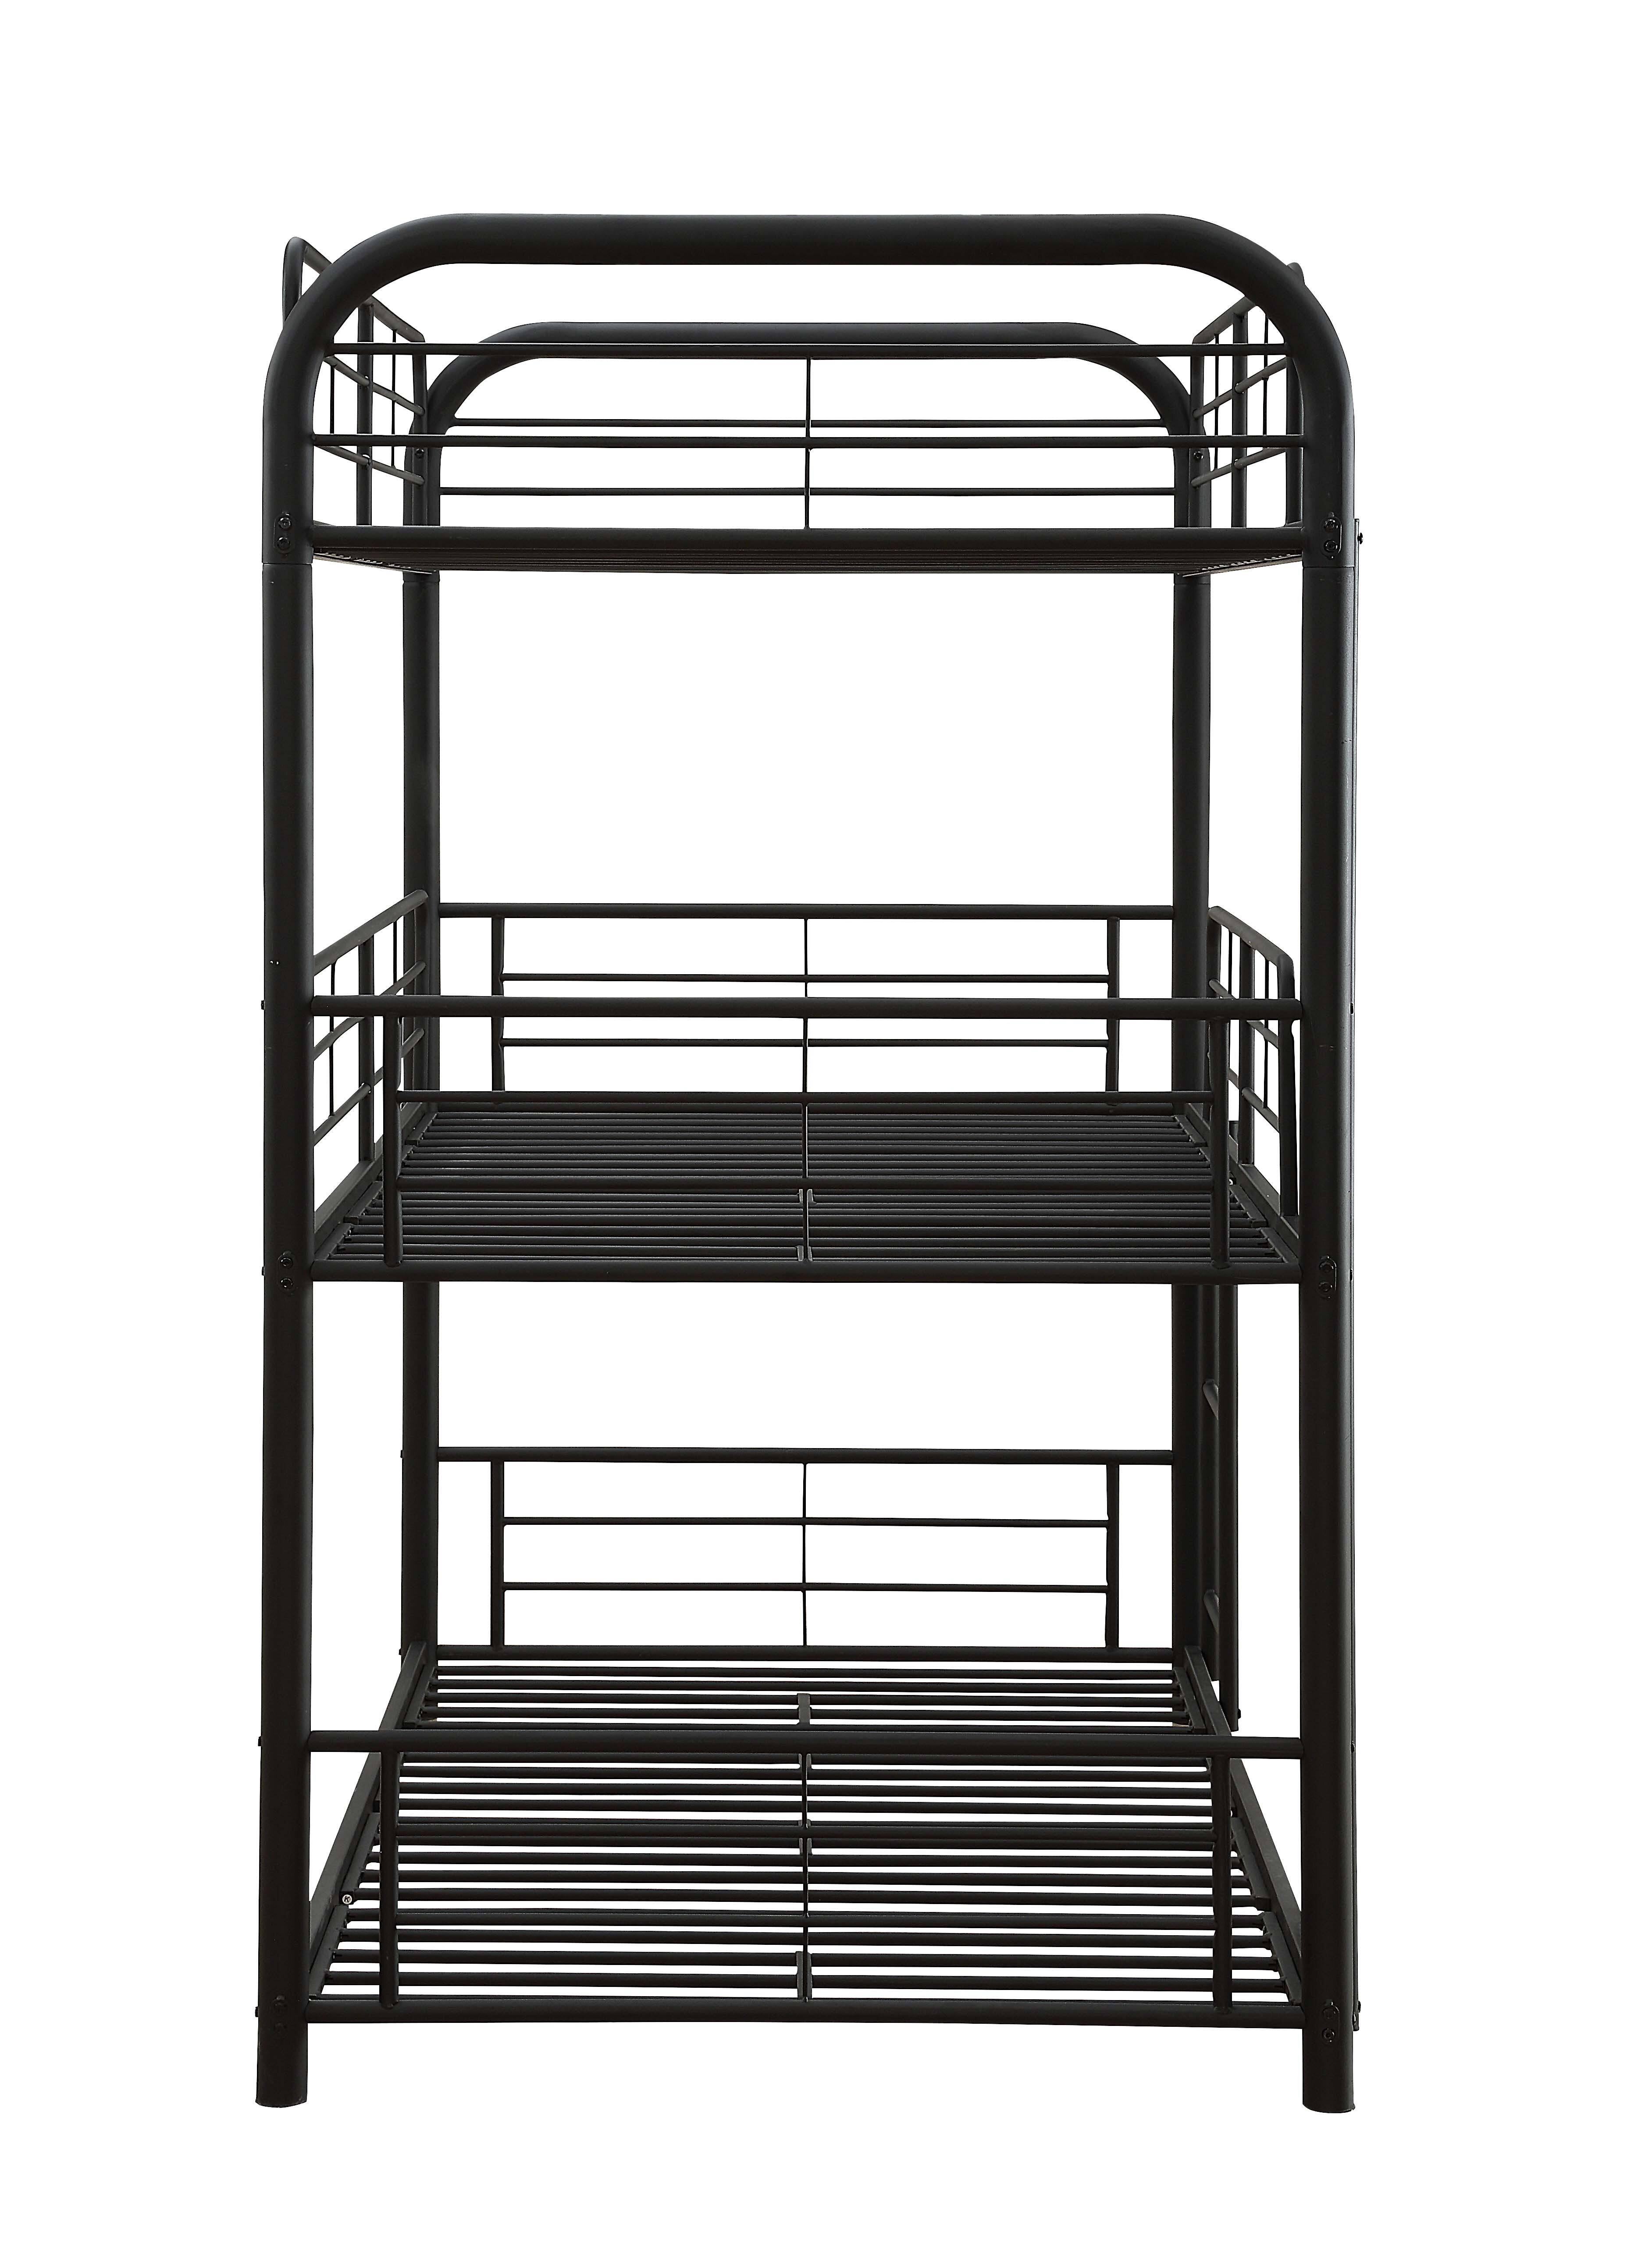 Three Layer Bunk Bed Frame Side